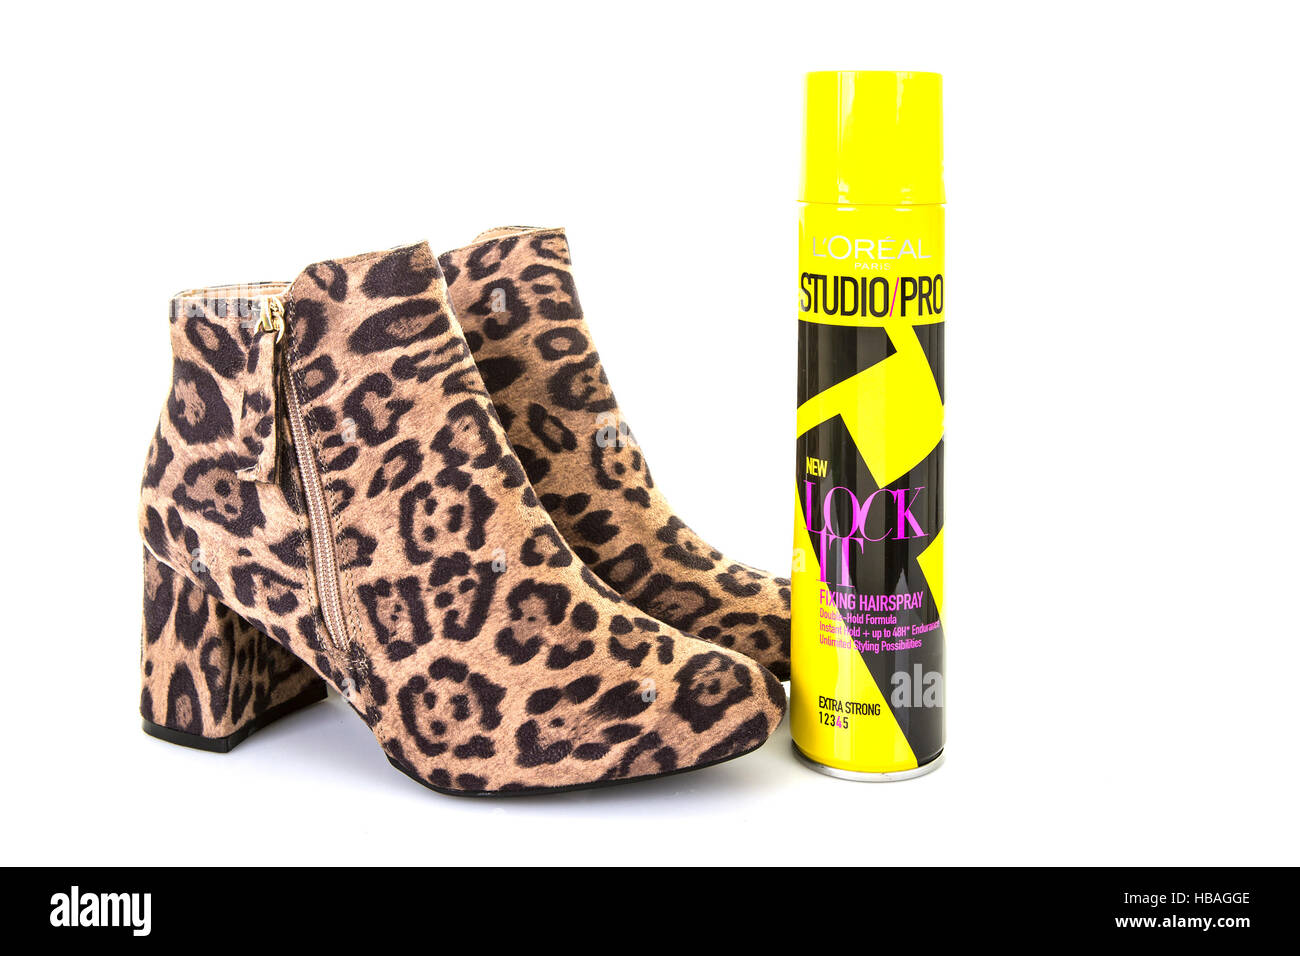 f40c82c68 Pair of Leopard Skin Boots with a can of Loreal Studio Pro Lock It hair  spray